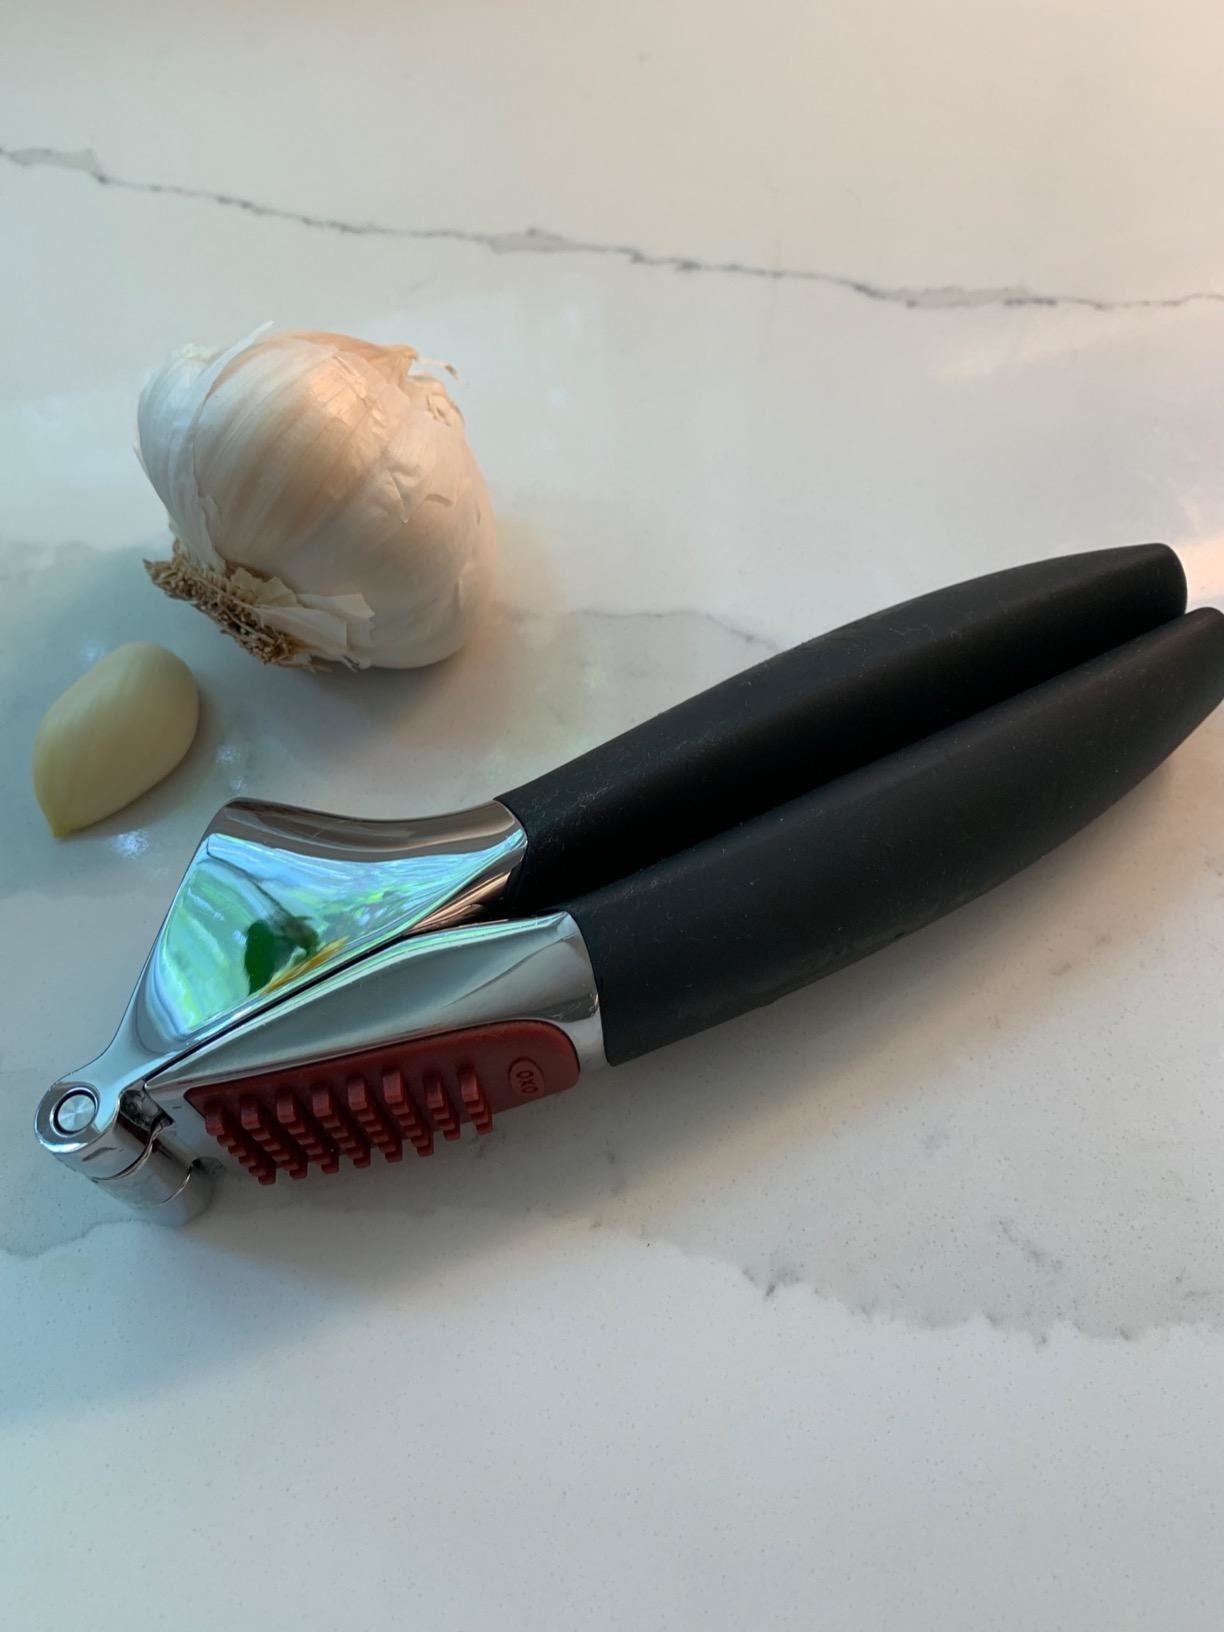 A garlic press with a bulb and clove of garlic next to it.